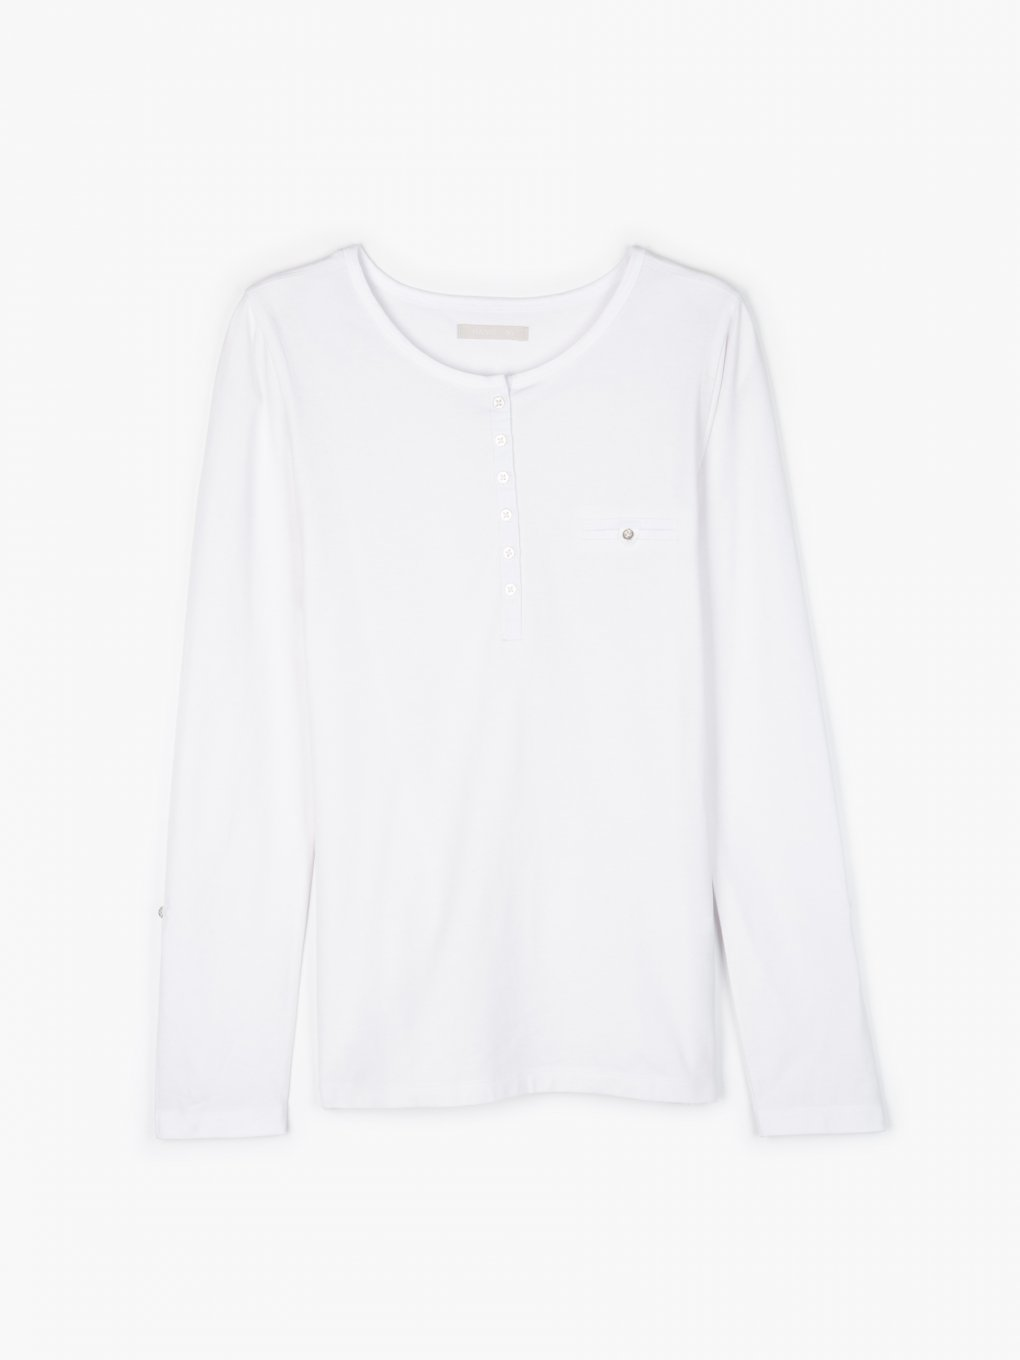 T-shirt with roll up sleeves